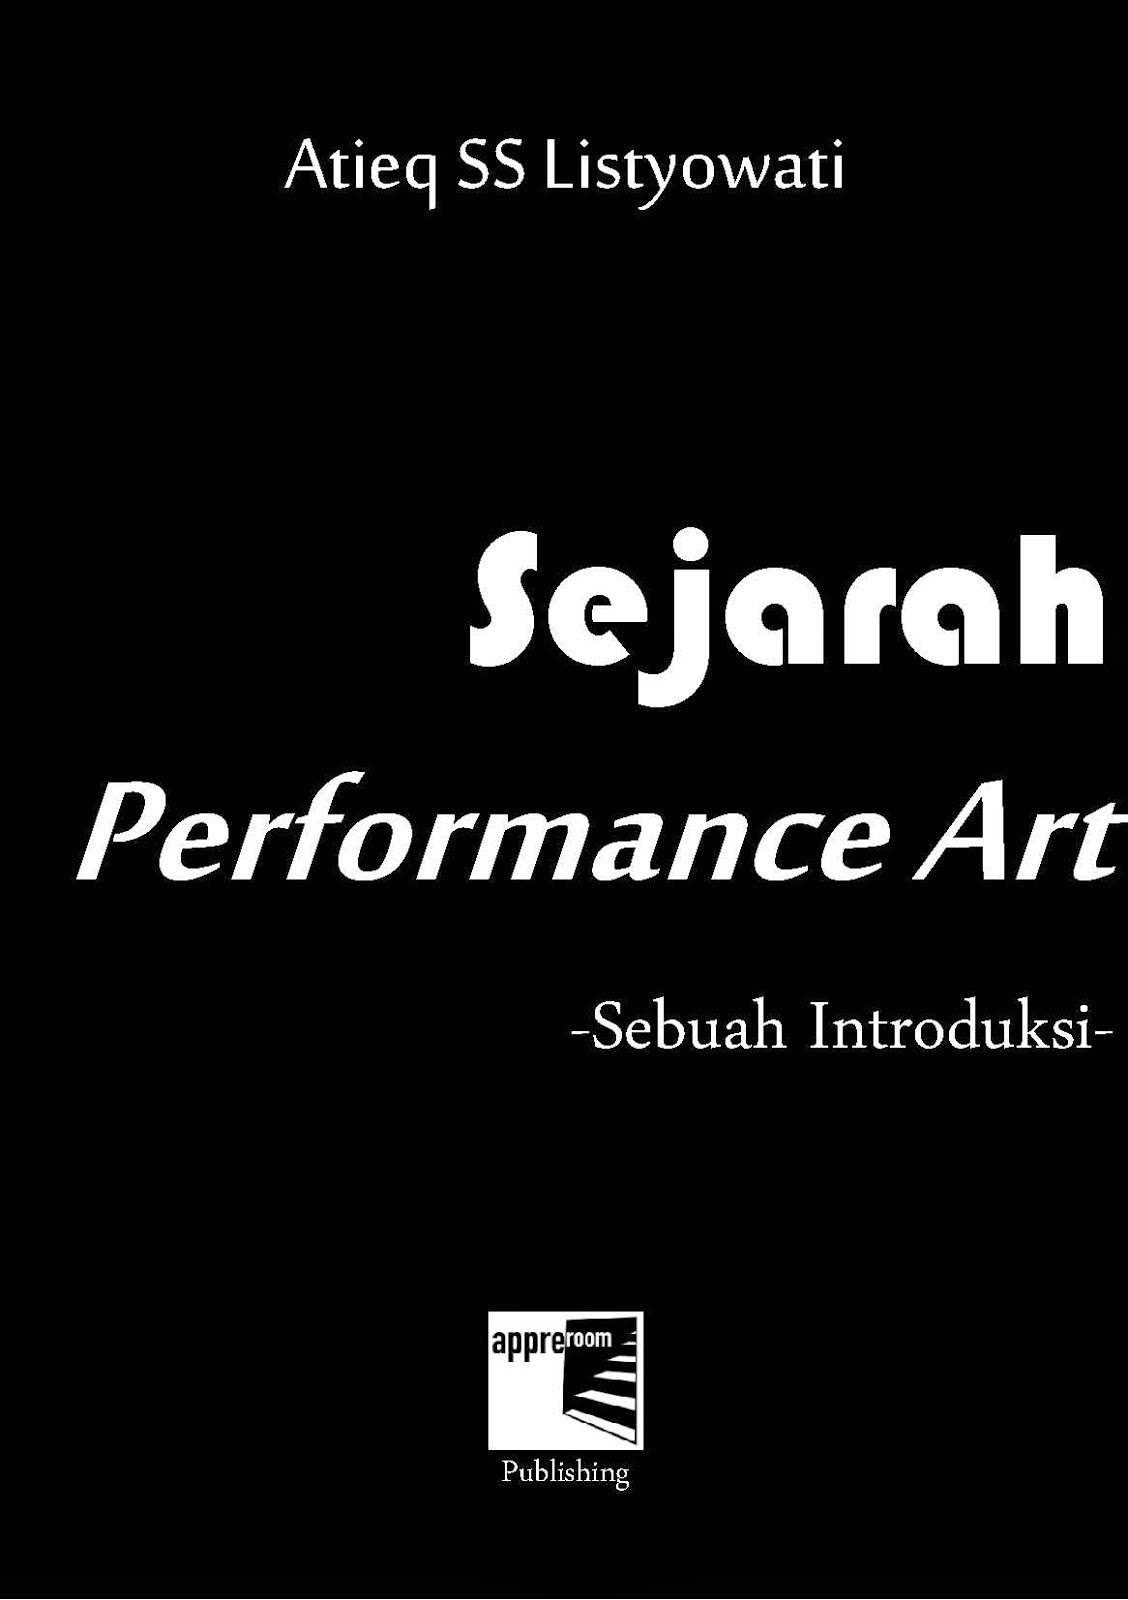 Sejarah Performance Art